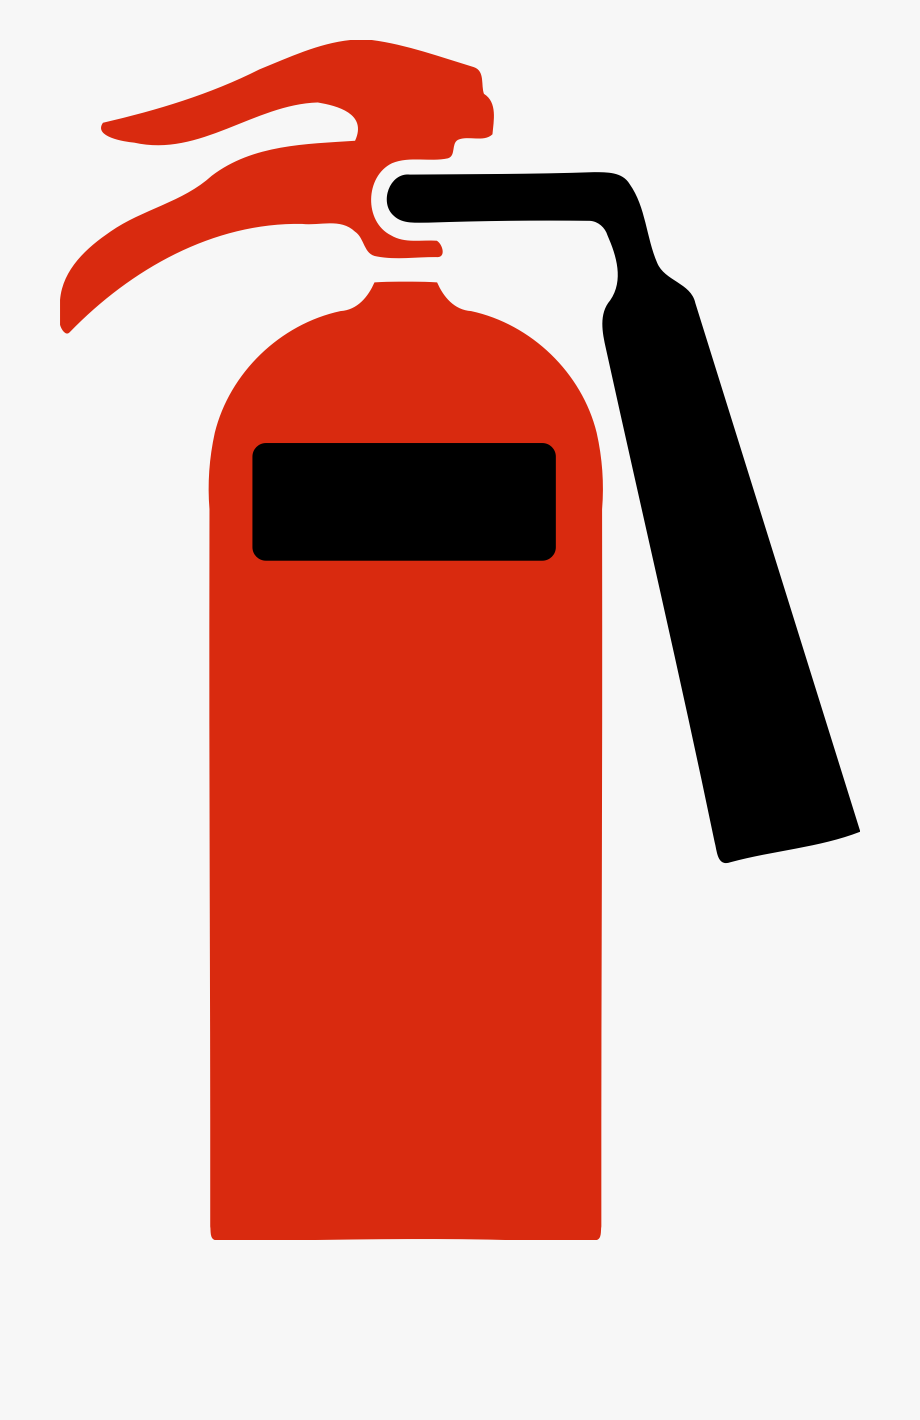 Extinguisher Clipart Fire Uniform.